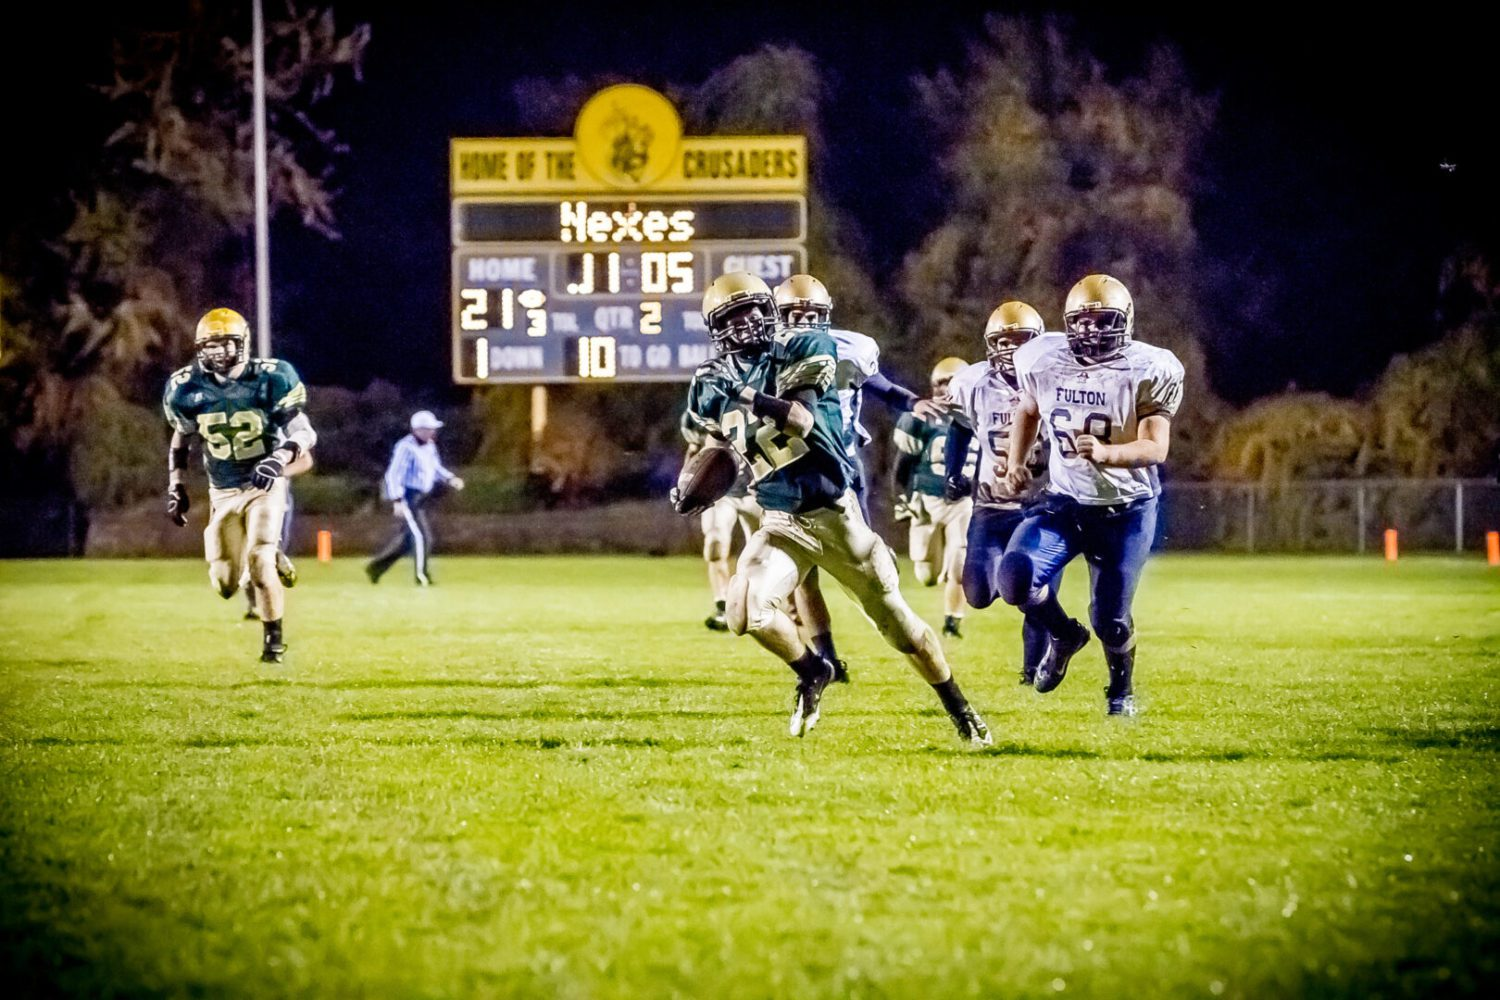 Muskegon Catholic cruises into Division 8 district finals with rout of Fulton